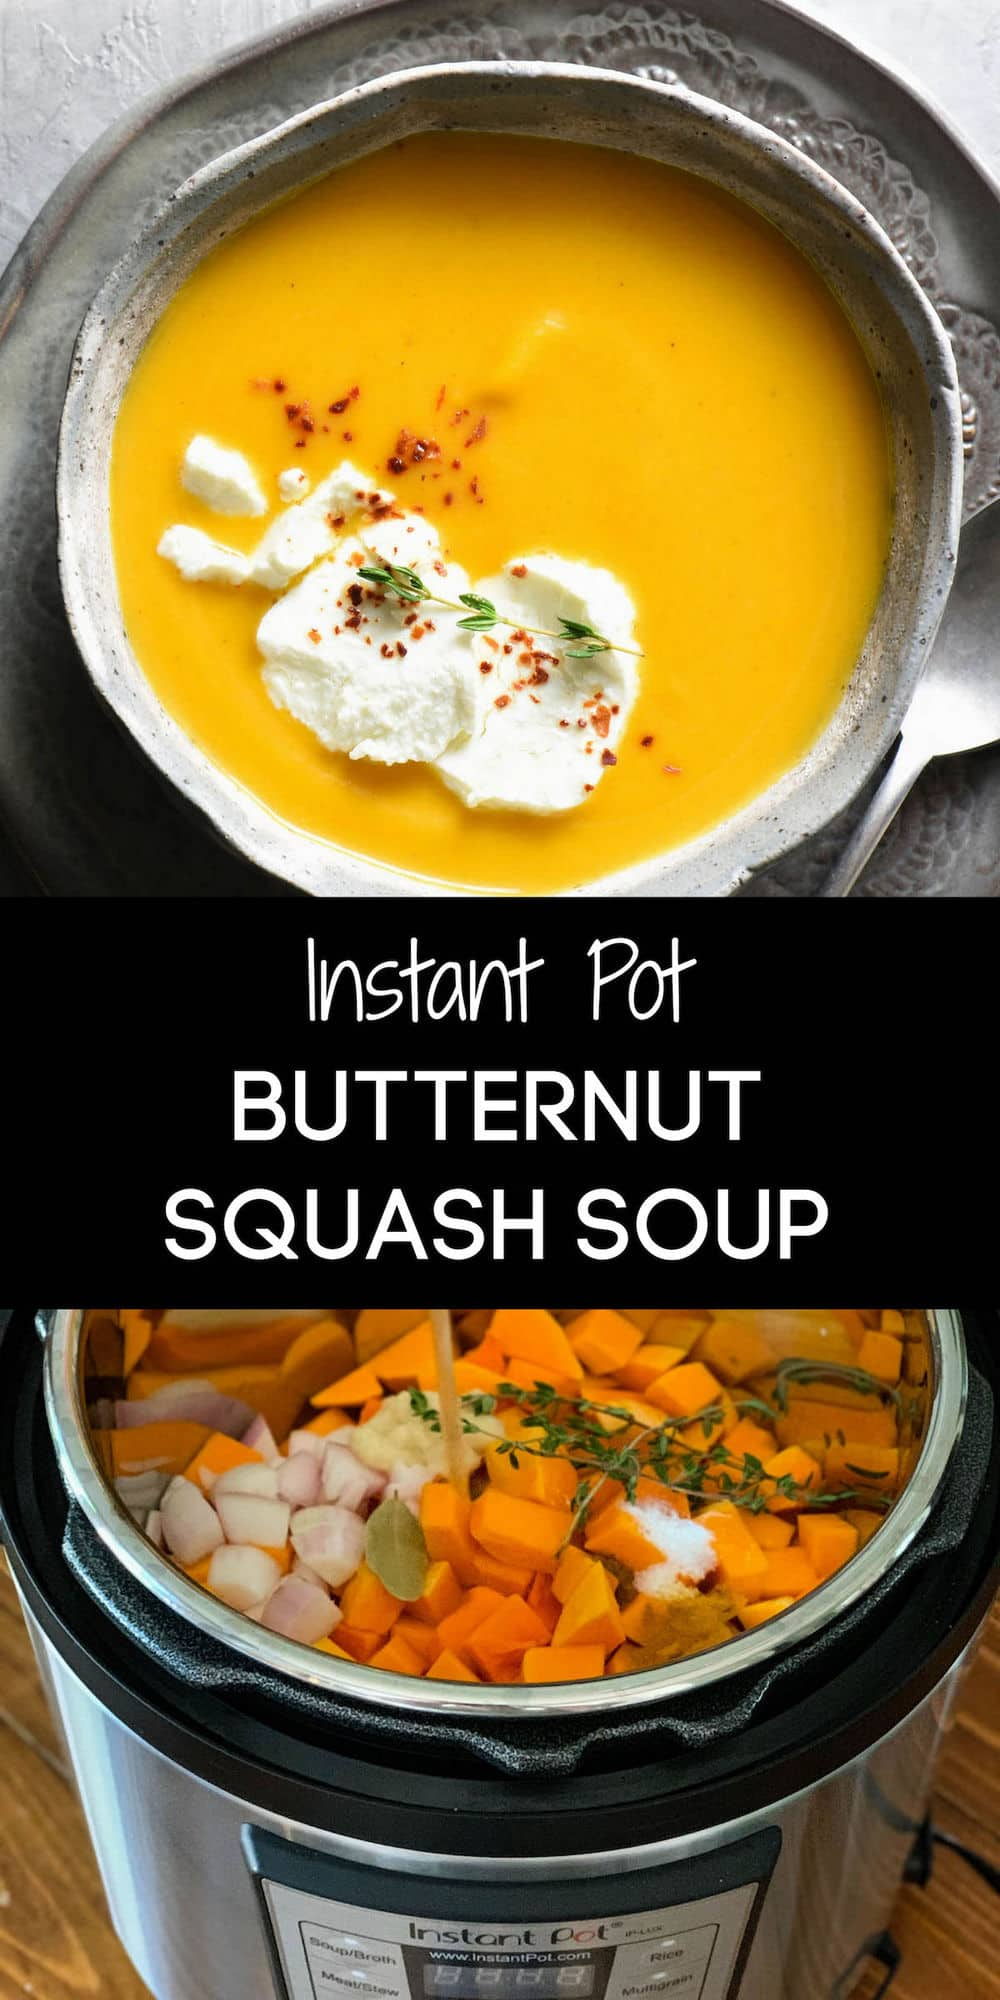 This simple Instant Pot Butternut Squash Soup cooks in just 6 minutes! Finishing with goat cheese adds a special touch that makes this a restaurant-quality dish you can easily make at home. | foxeslovelemons.com